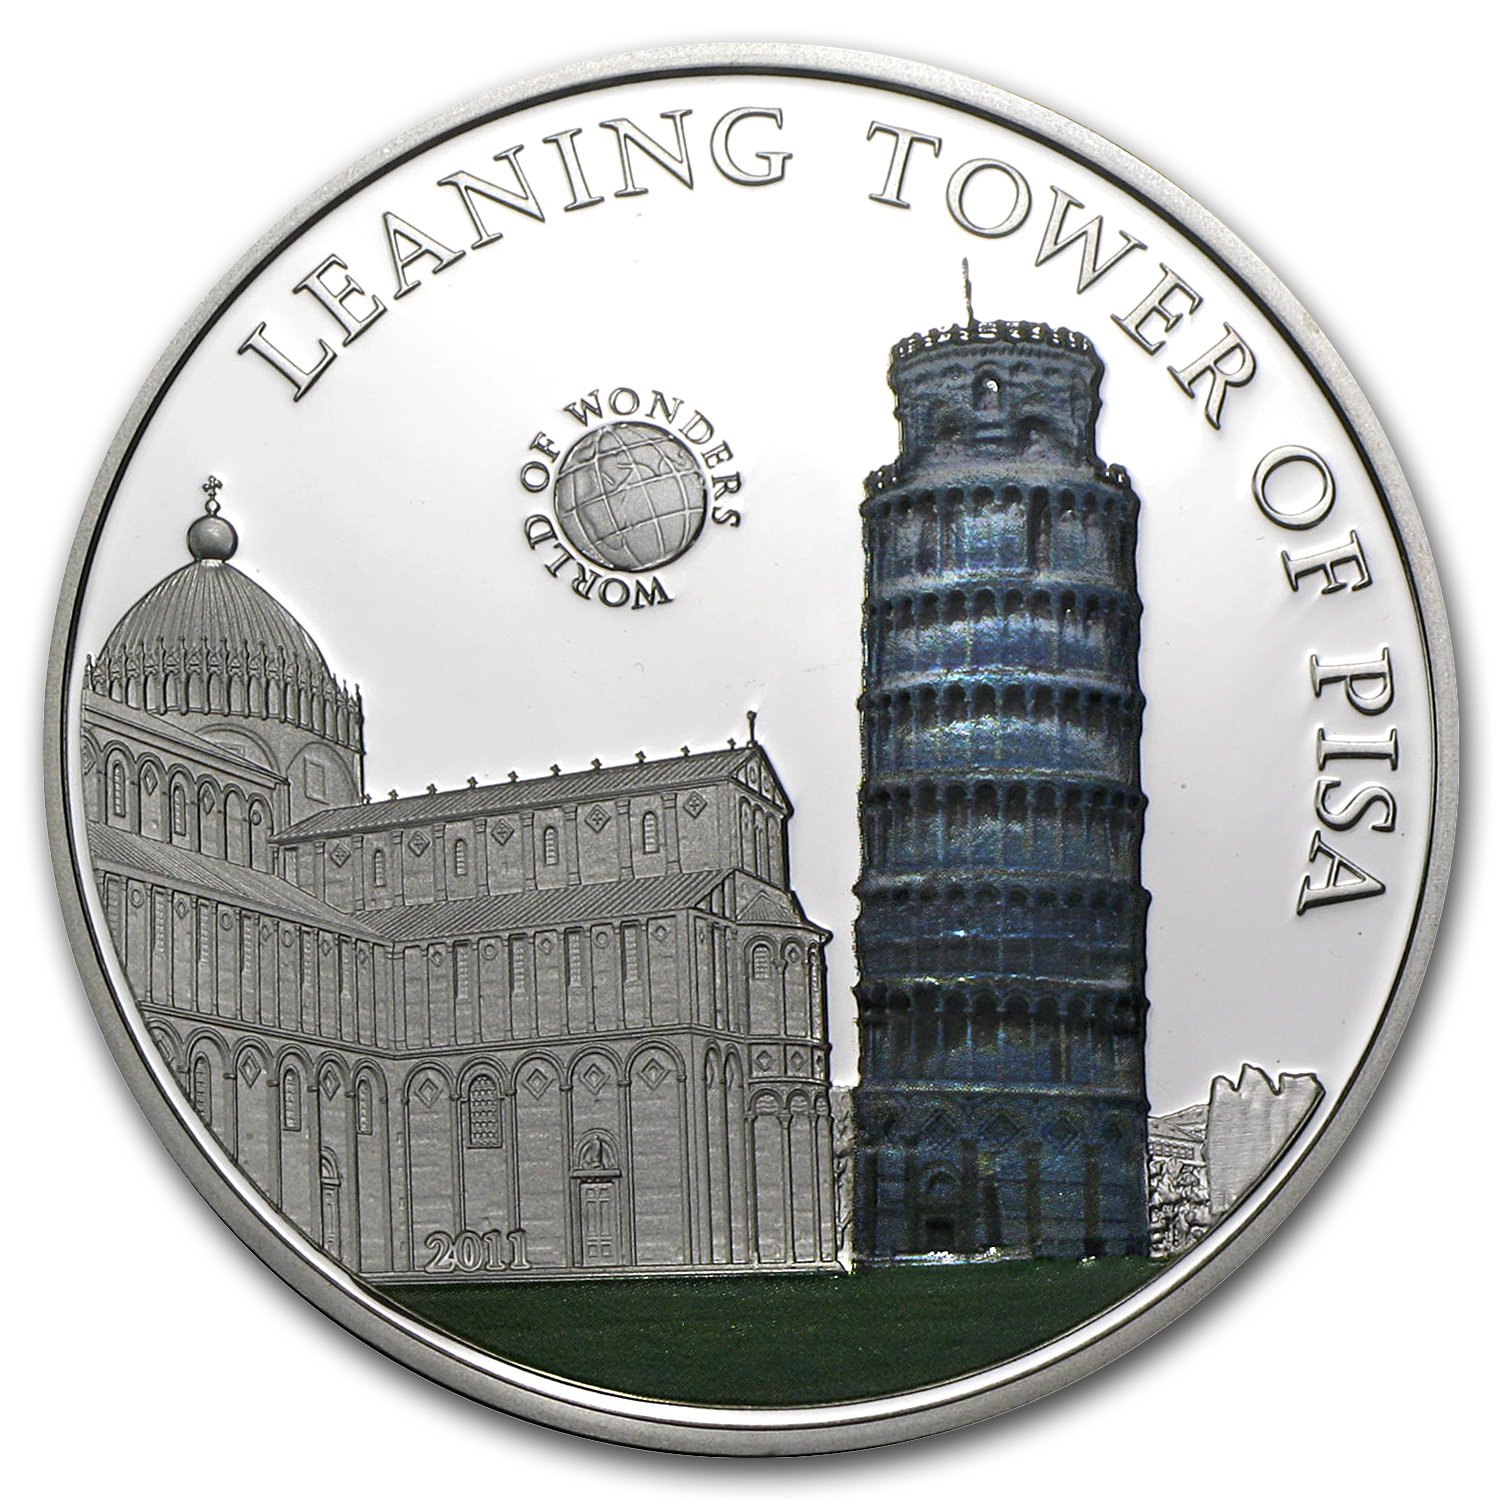 2011 Palau Proof Silver $5 World of Wonders Leaning Tower of Pisa